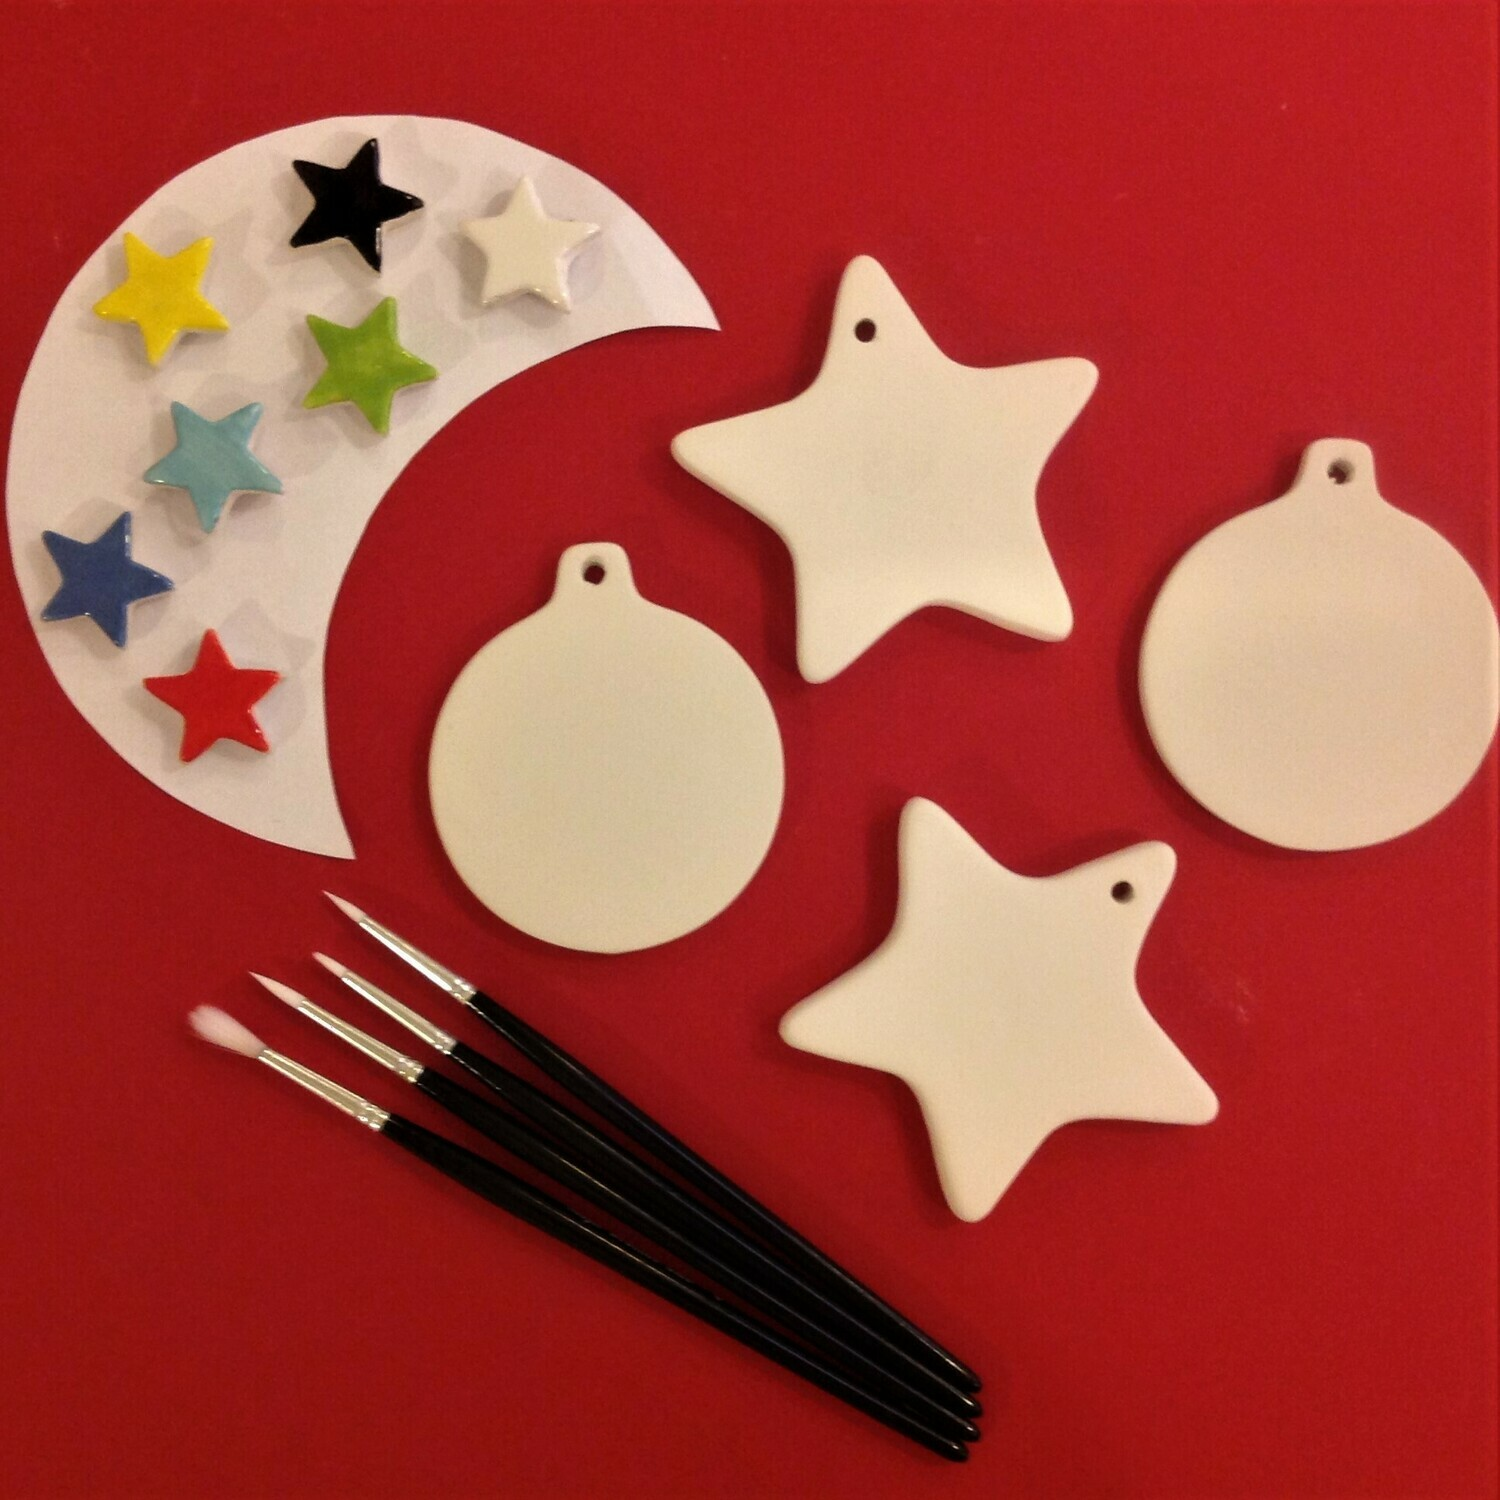 2 star and 2 flat bauble Christmas tree hangers